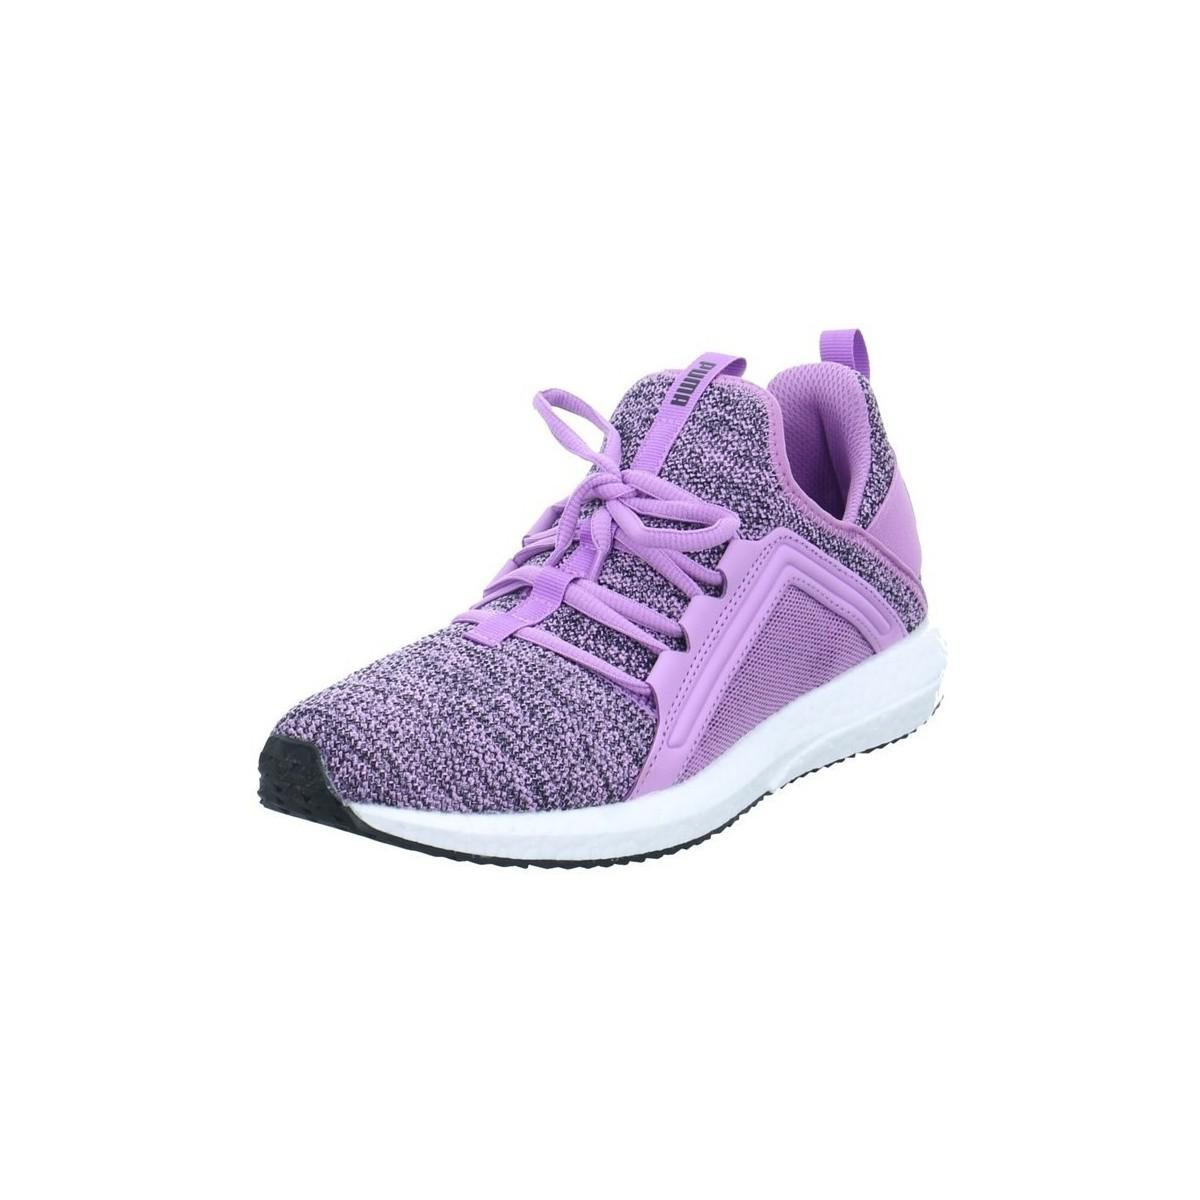 81d4c51d1ee03f Puma Mega Nrgy Knit Women s Shoes (trainers) In Purple in Purple - Lyst